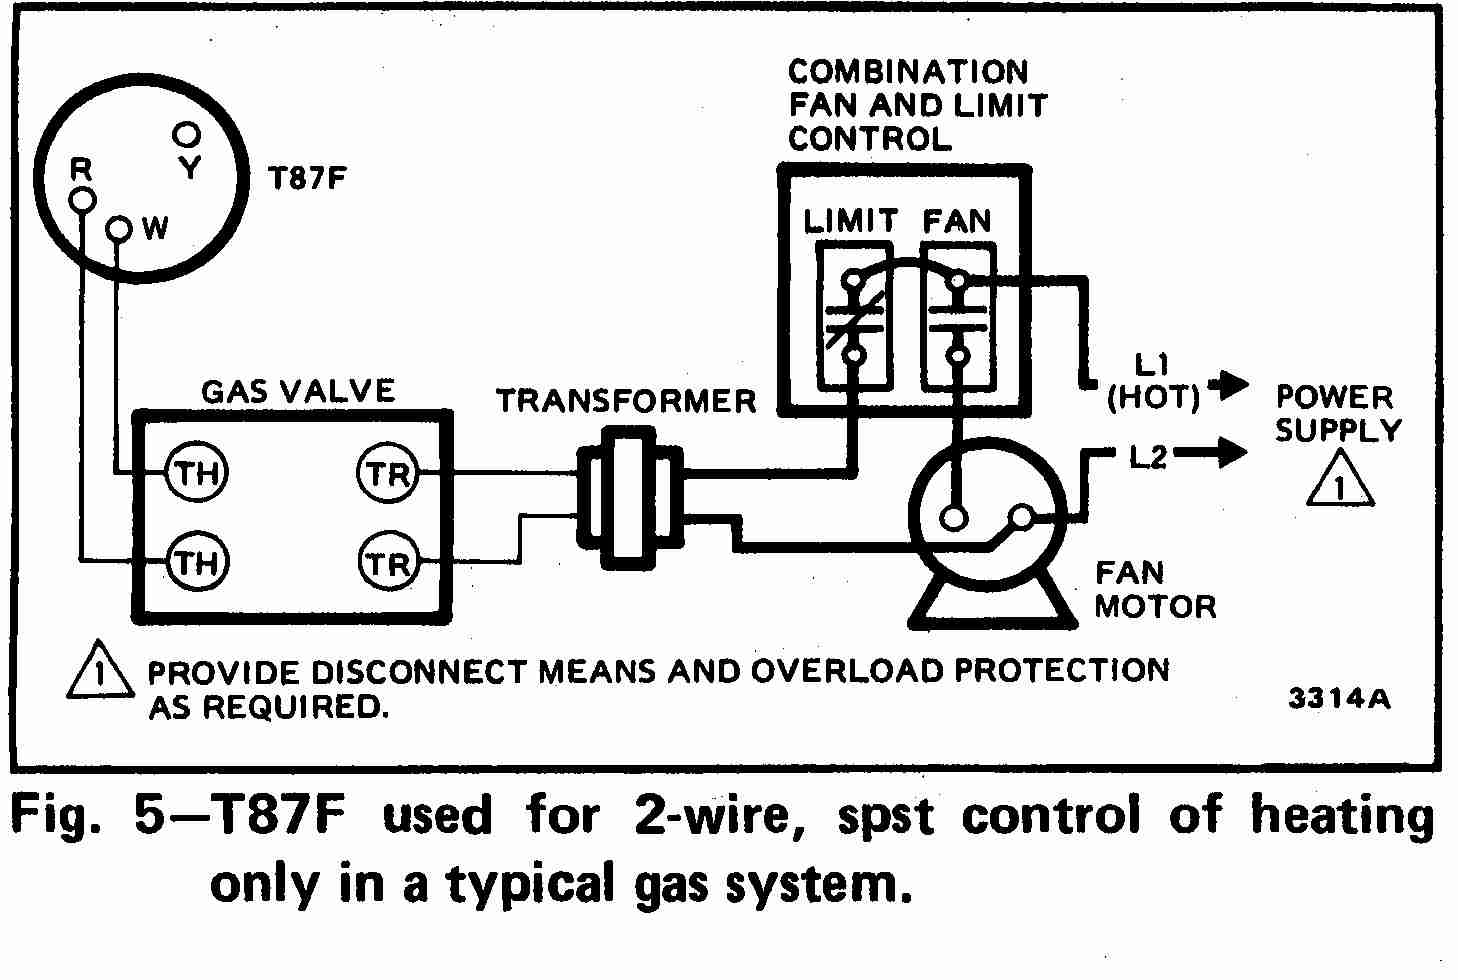 482621 V8043 Zone Valve Wiring 2 Wire Tstat likewise Honeywell Electric Actuators And Accessories moreover Honeywell Sundial S Plan Plus additionally Wiring Diagram For Honeywell Frost Stat also Old Carrier Gas Furnace Wiring Diagram. on wiring diagram for honeywell gas valve